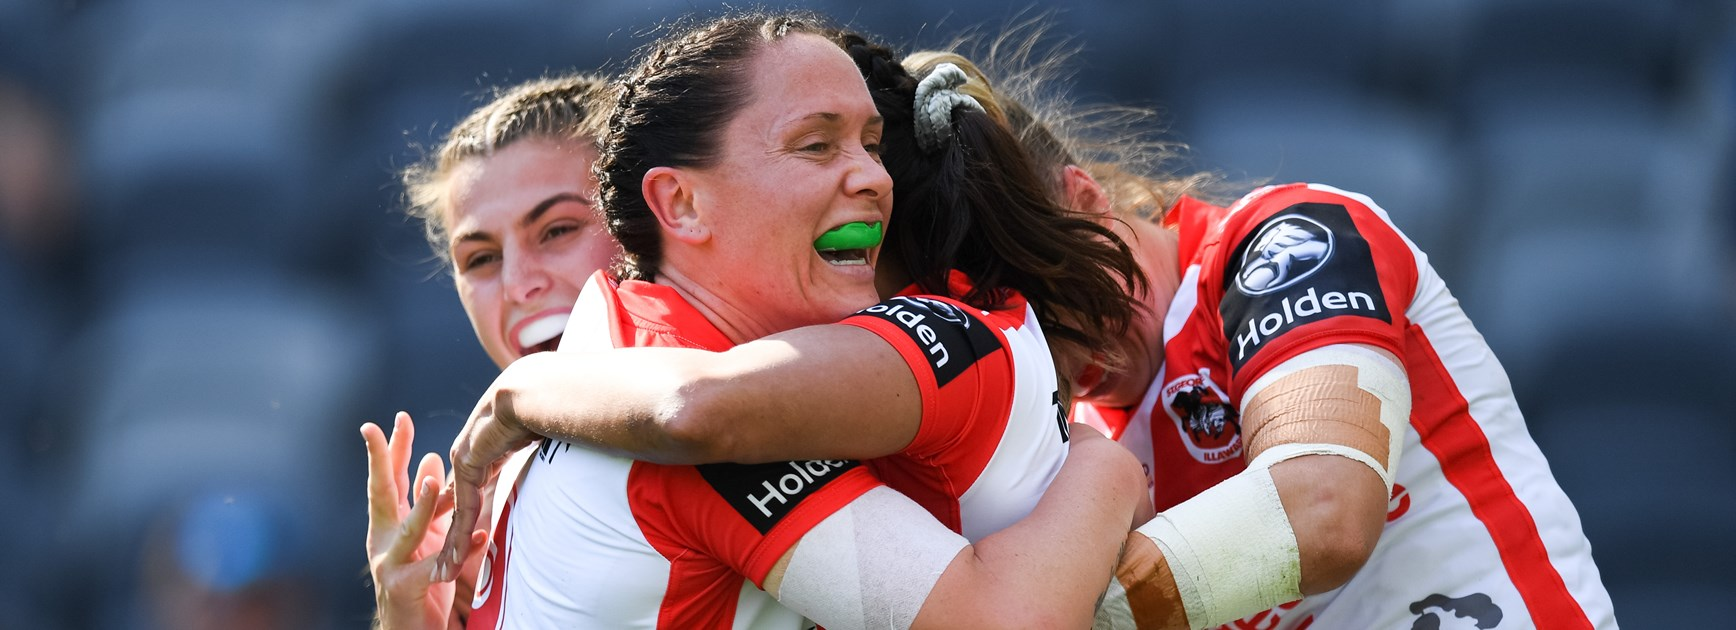 Dragons players celebrate NRLW success.